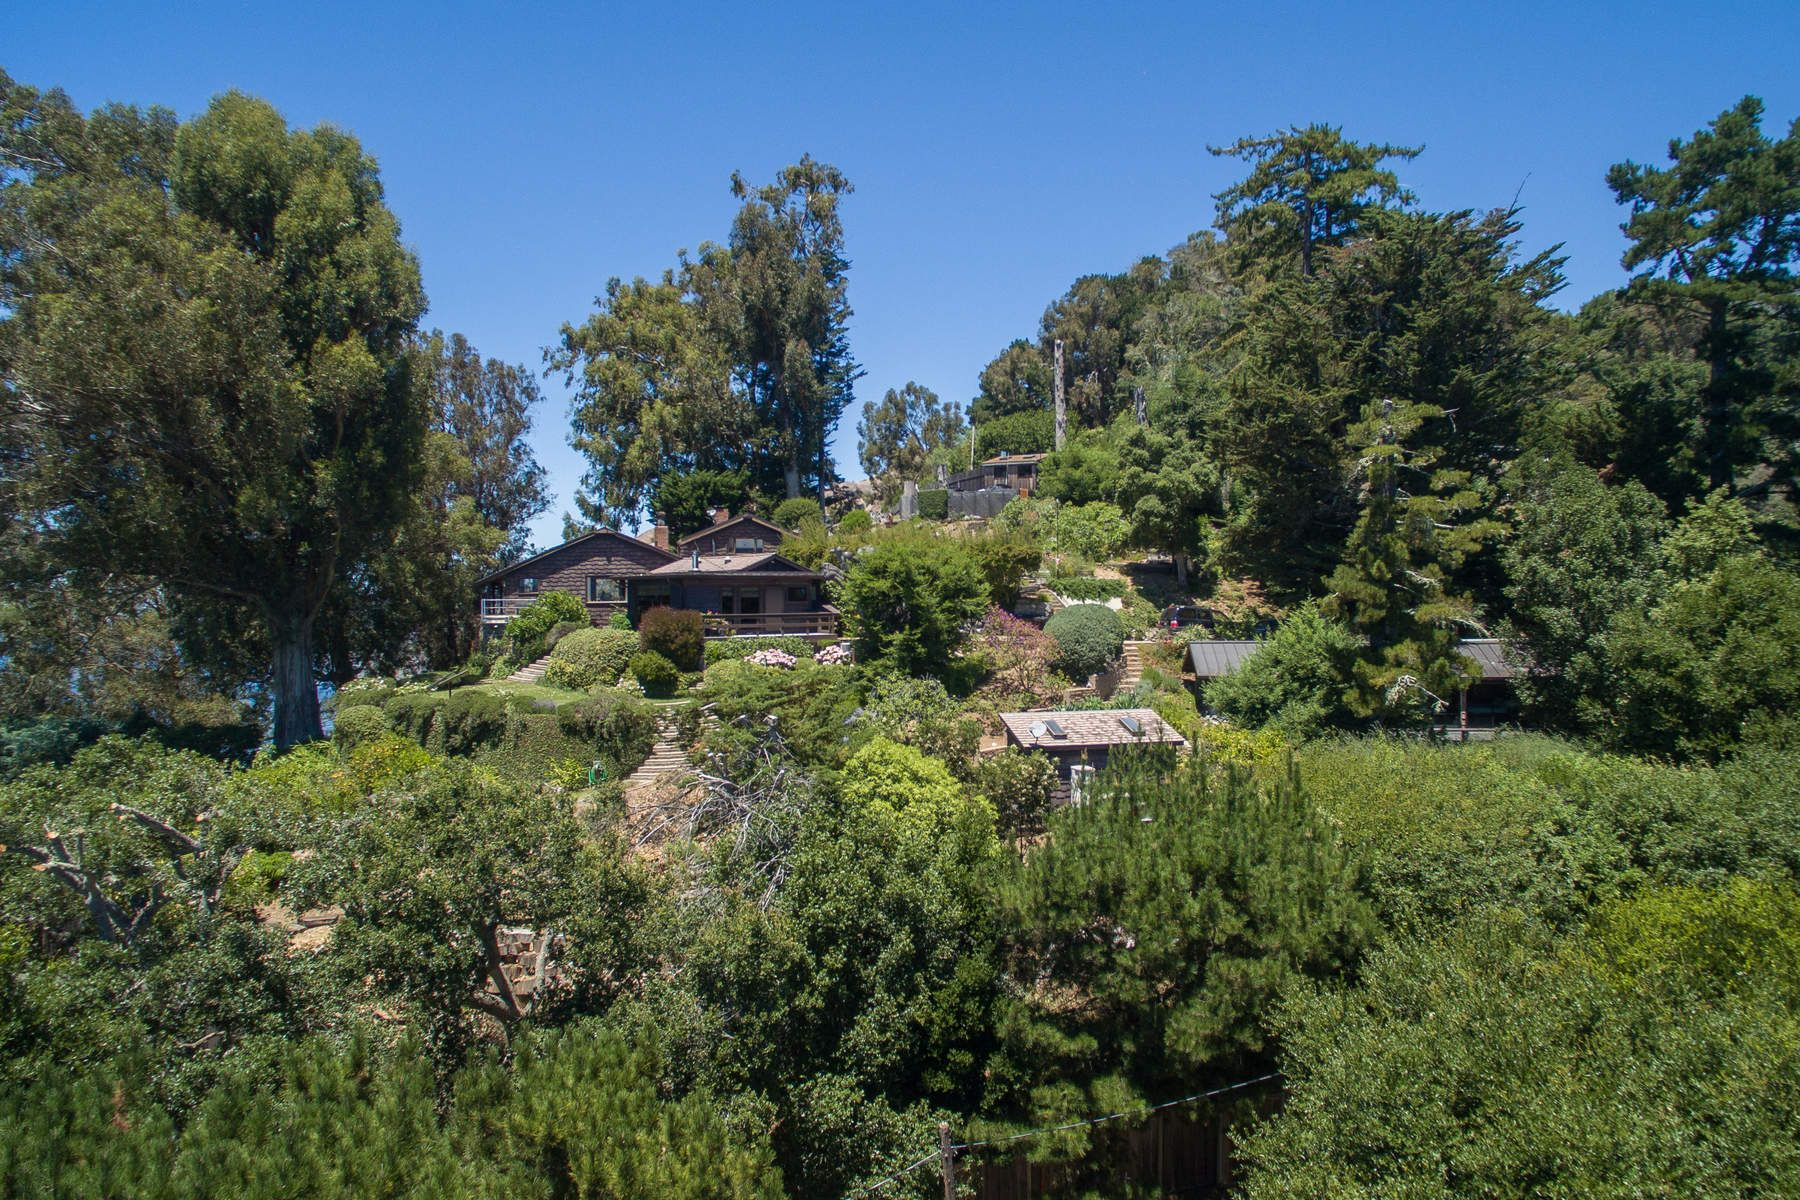 Single Family Homes for Sale at Point of Whales 51400 Partington Ridge Road Big Sur, California 93920 United States